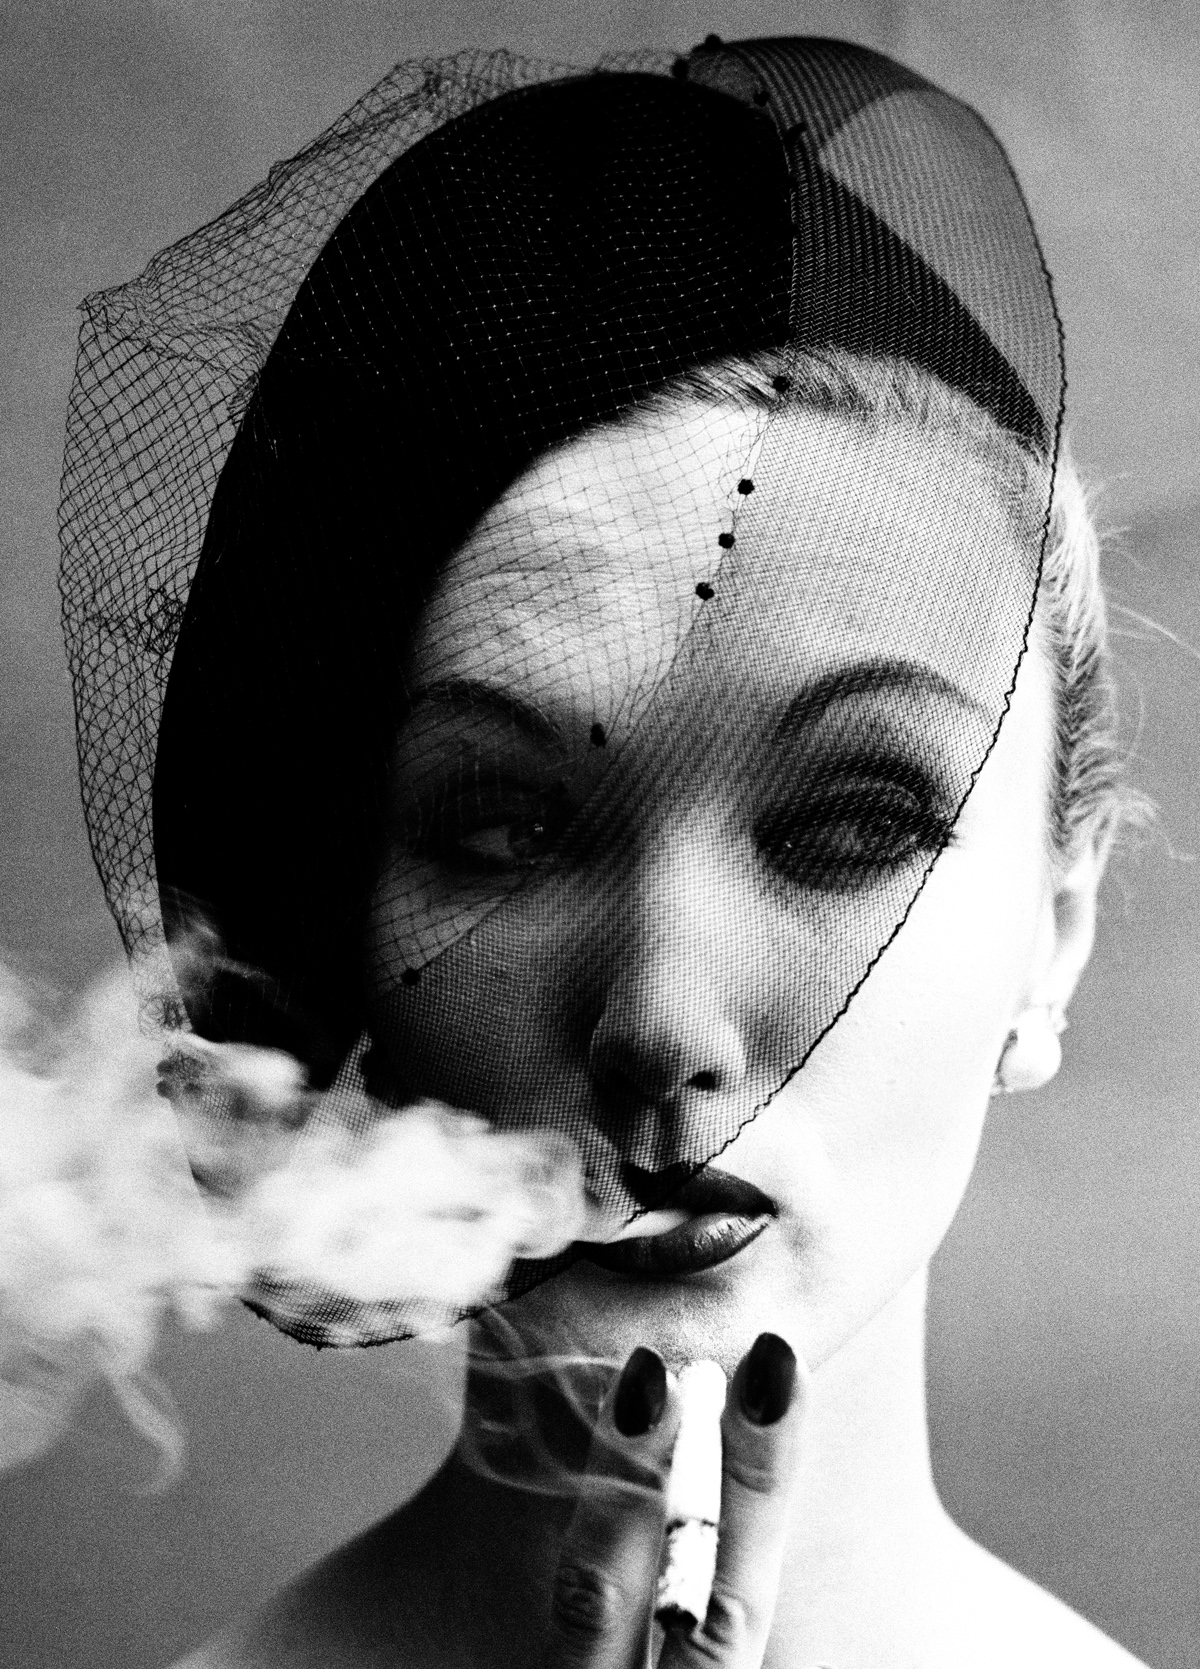 Smoke & Veil, Paris (Vogue), 1958, cover of book In & Out of Fashion, Paris, 1994